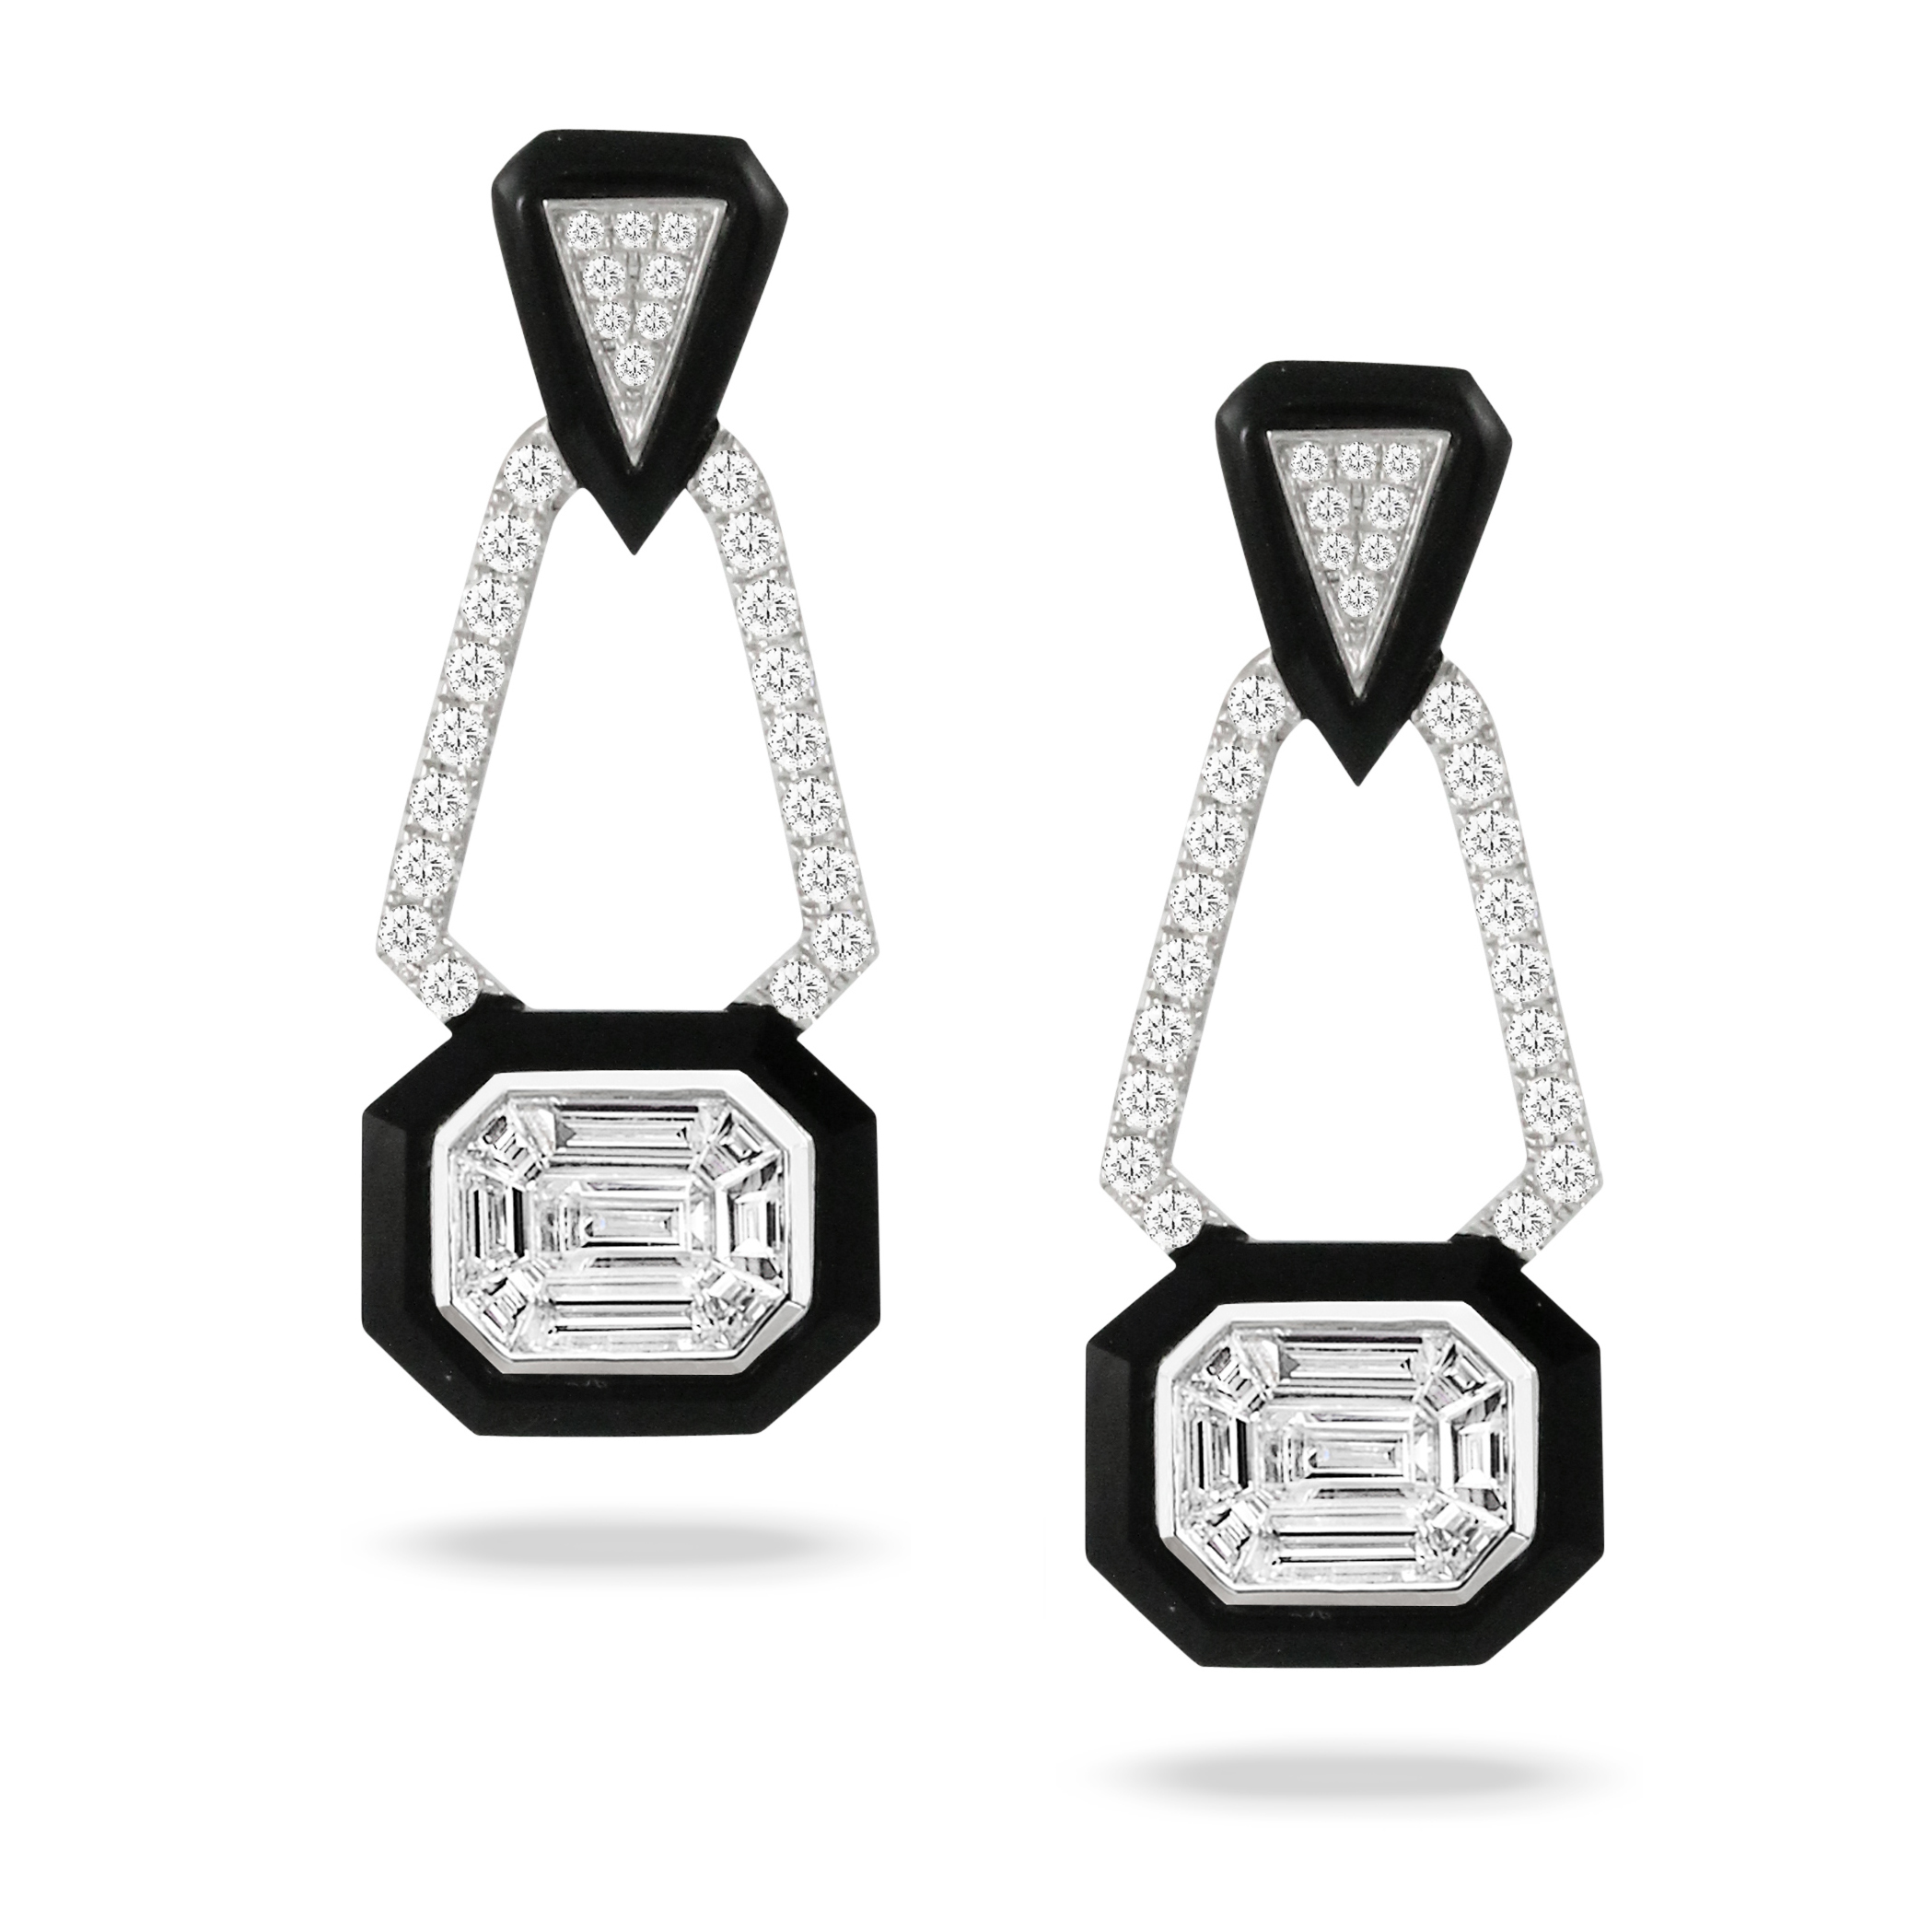 18K Diamond Earrings - 18K White Gold Invisible Set Diamond Earring With Black Onyx